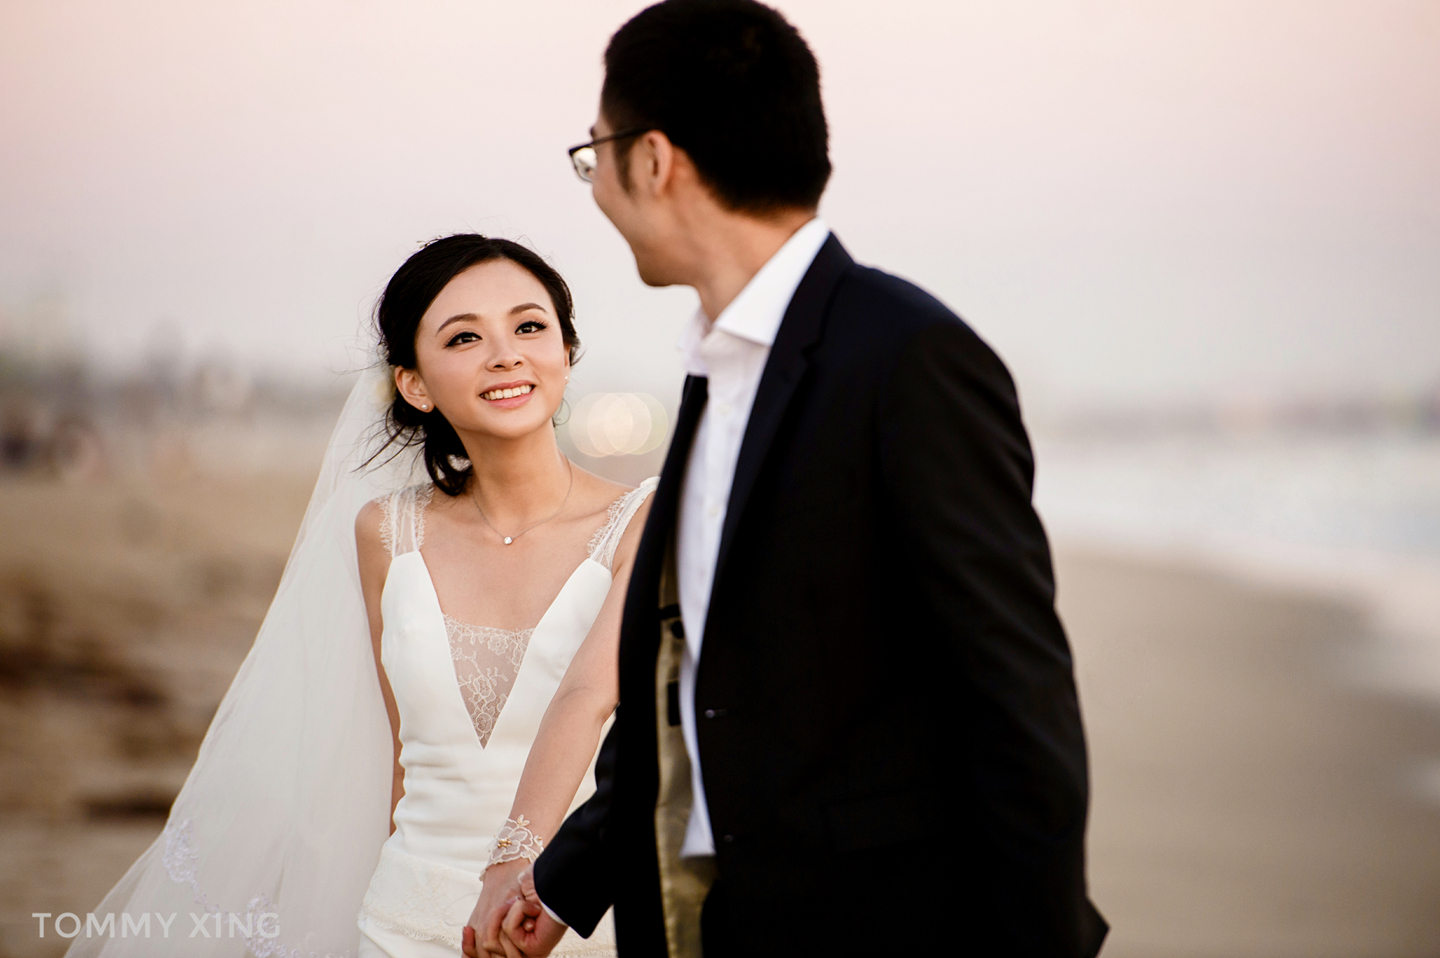 Los Angeles per-wedding 洛杉矶婚纱照 by Tommy Xing Photography 22.jpg